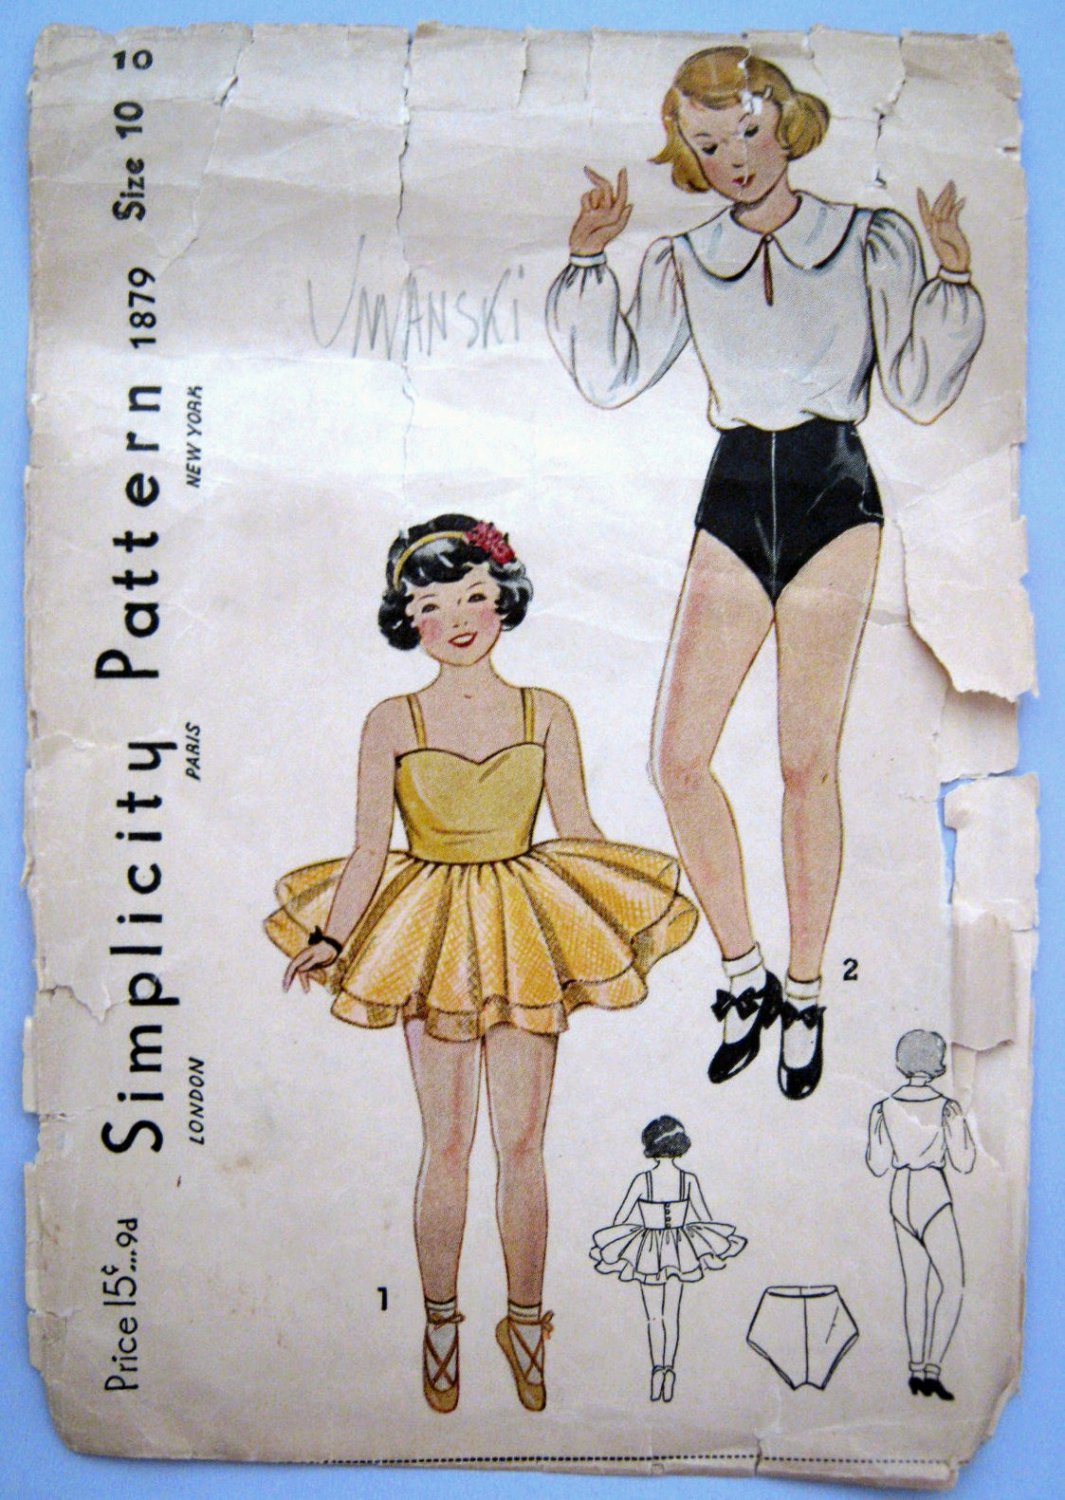 VTG 1930s Tutu Ballet & Tap Dance Costume Sewing Pattern Simplicity 1879 Girls Size 10 Breast 28